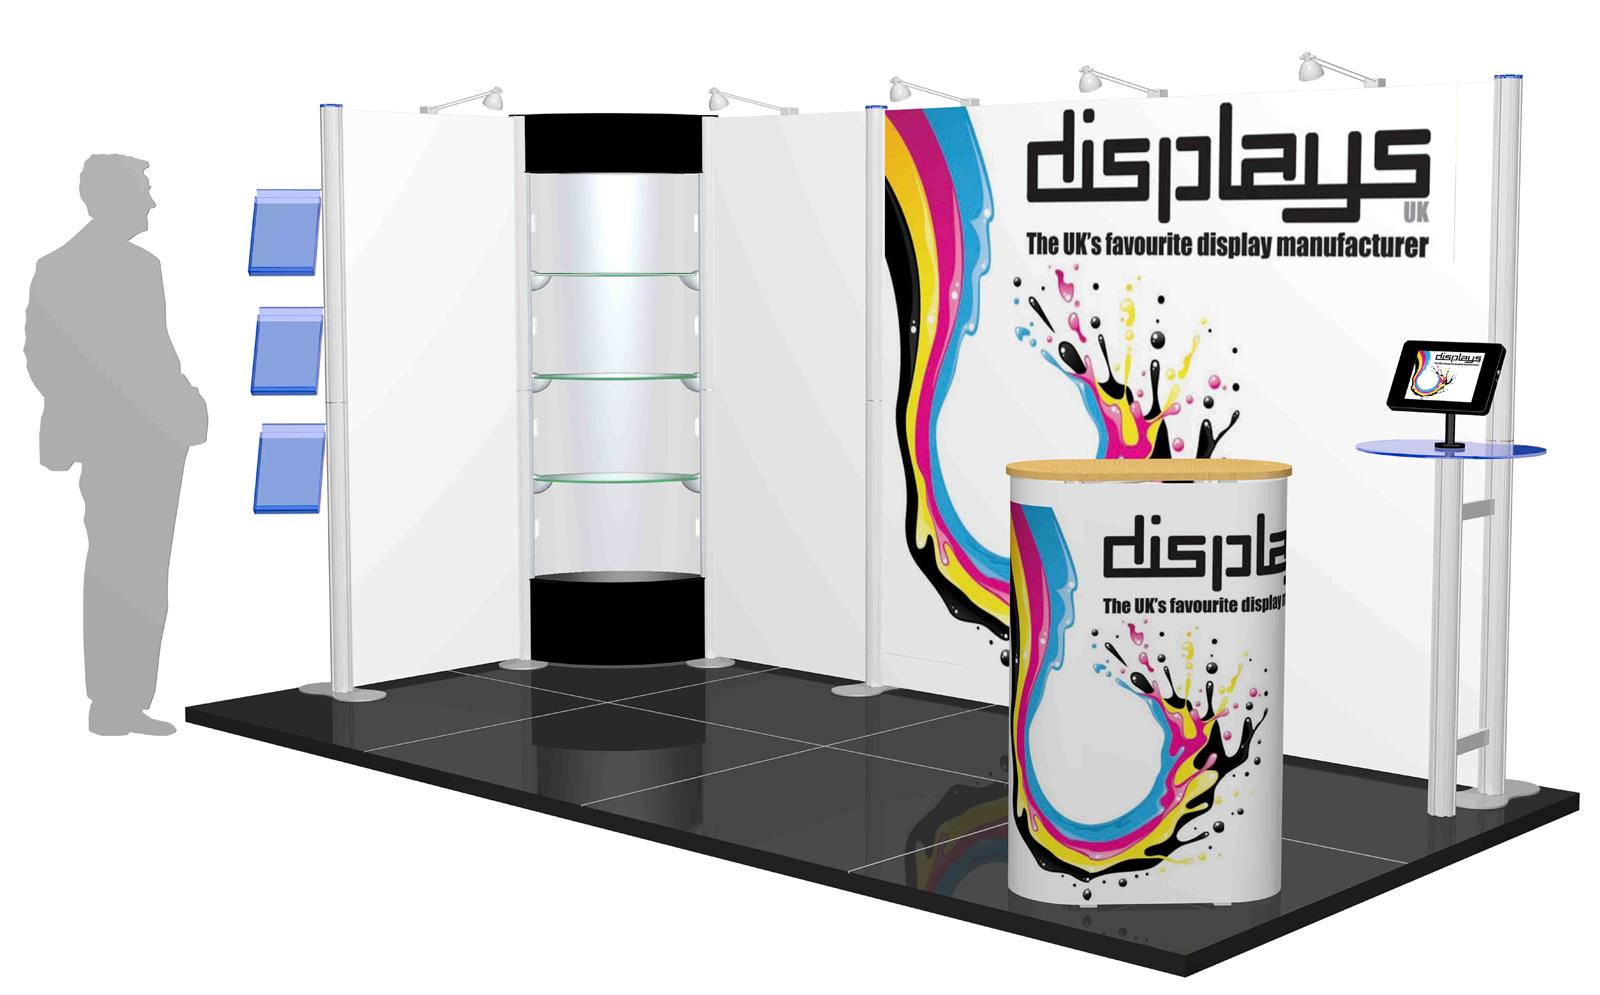 Centro 4m x 2m Modular Exhibition Stand - C4x2-2a